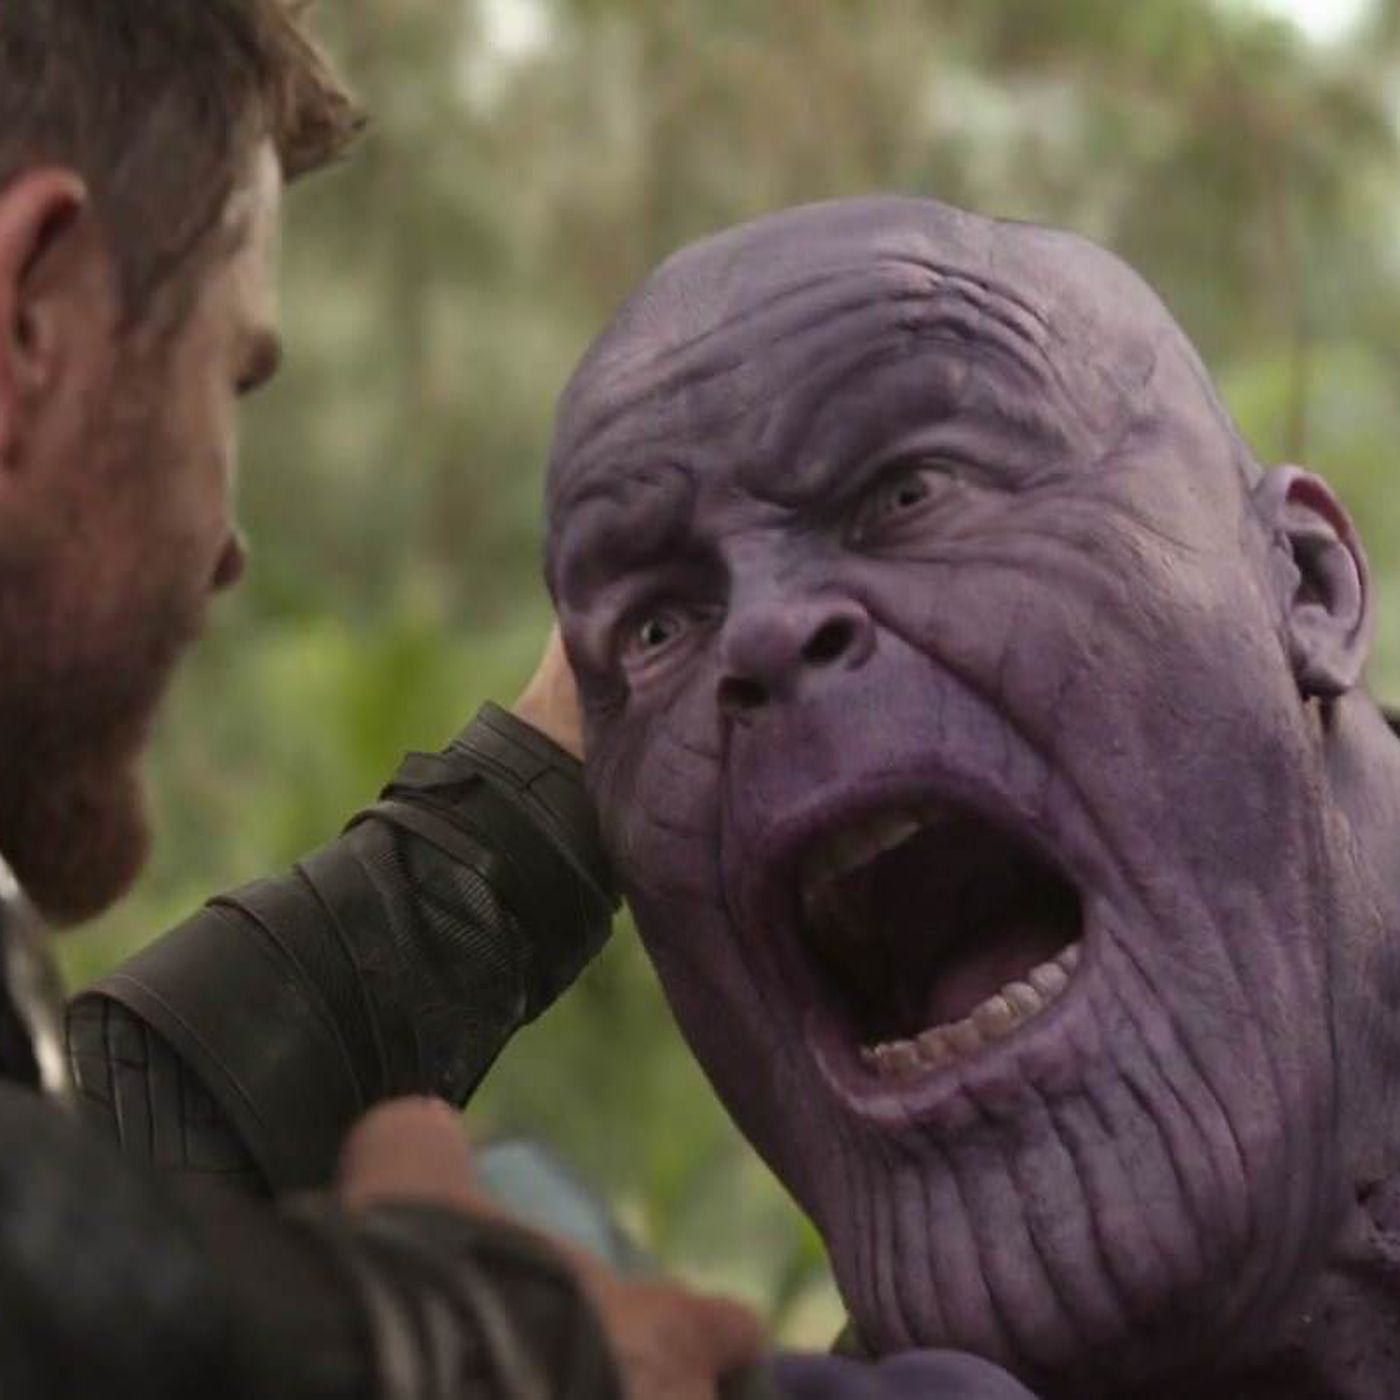 Avengers: Endgame theory of Ant-Man going up Thanos' butt